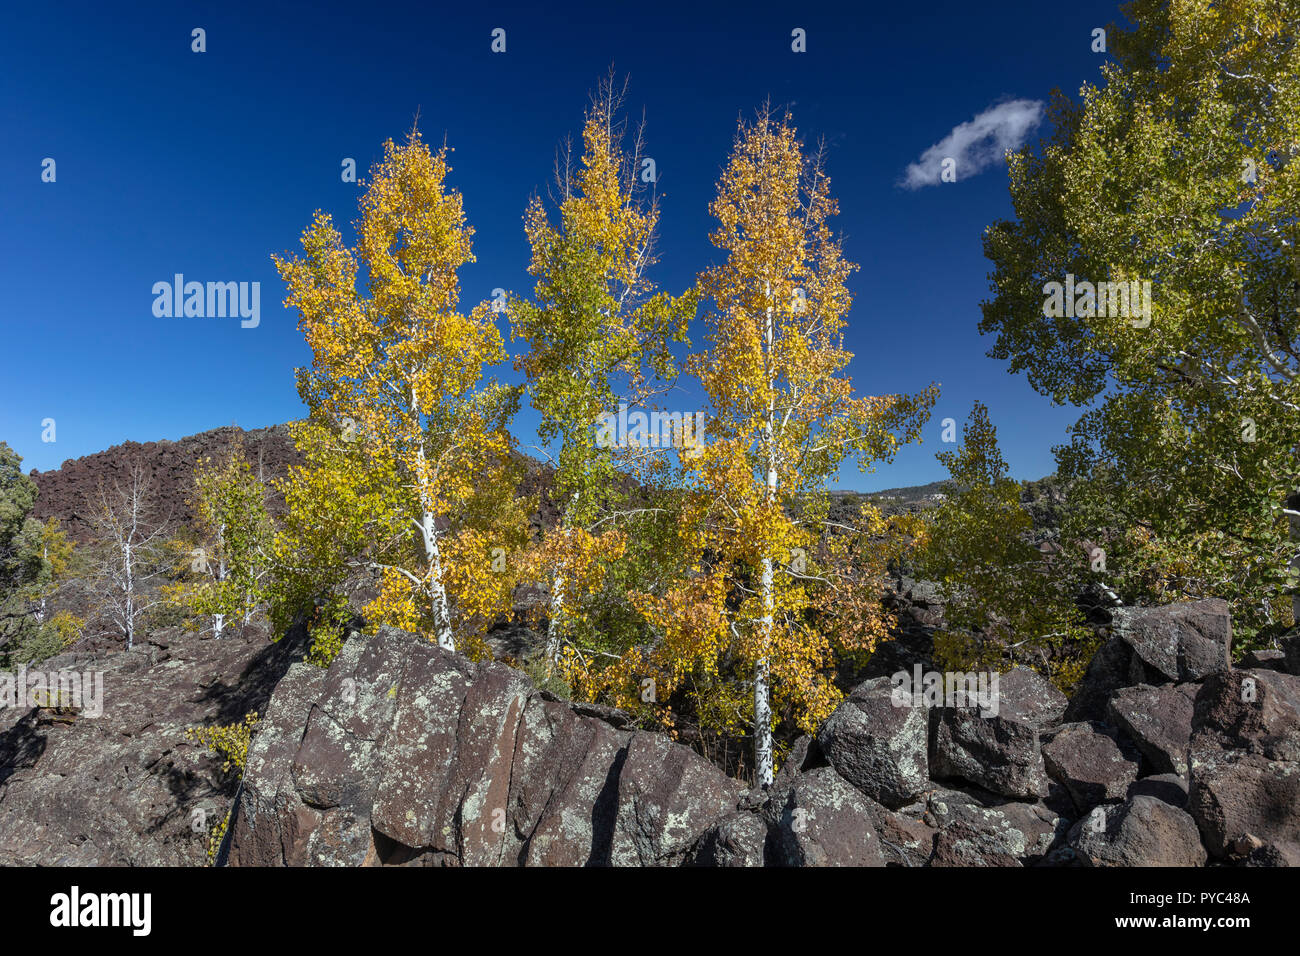 Changing Aspen Growing in Ancient Lava Flow, Southern Utah - Stock Image